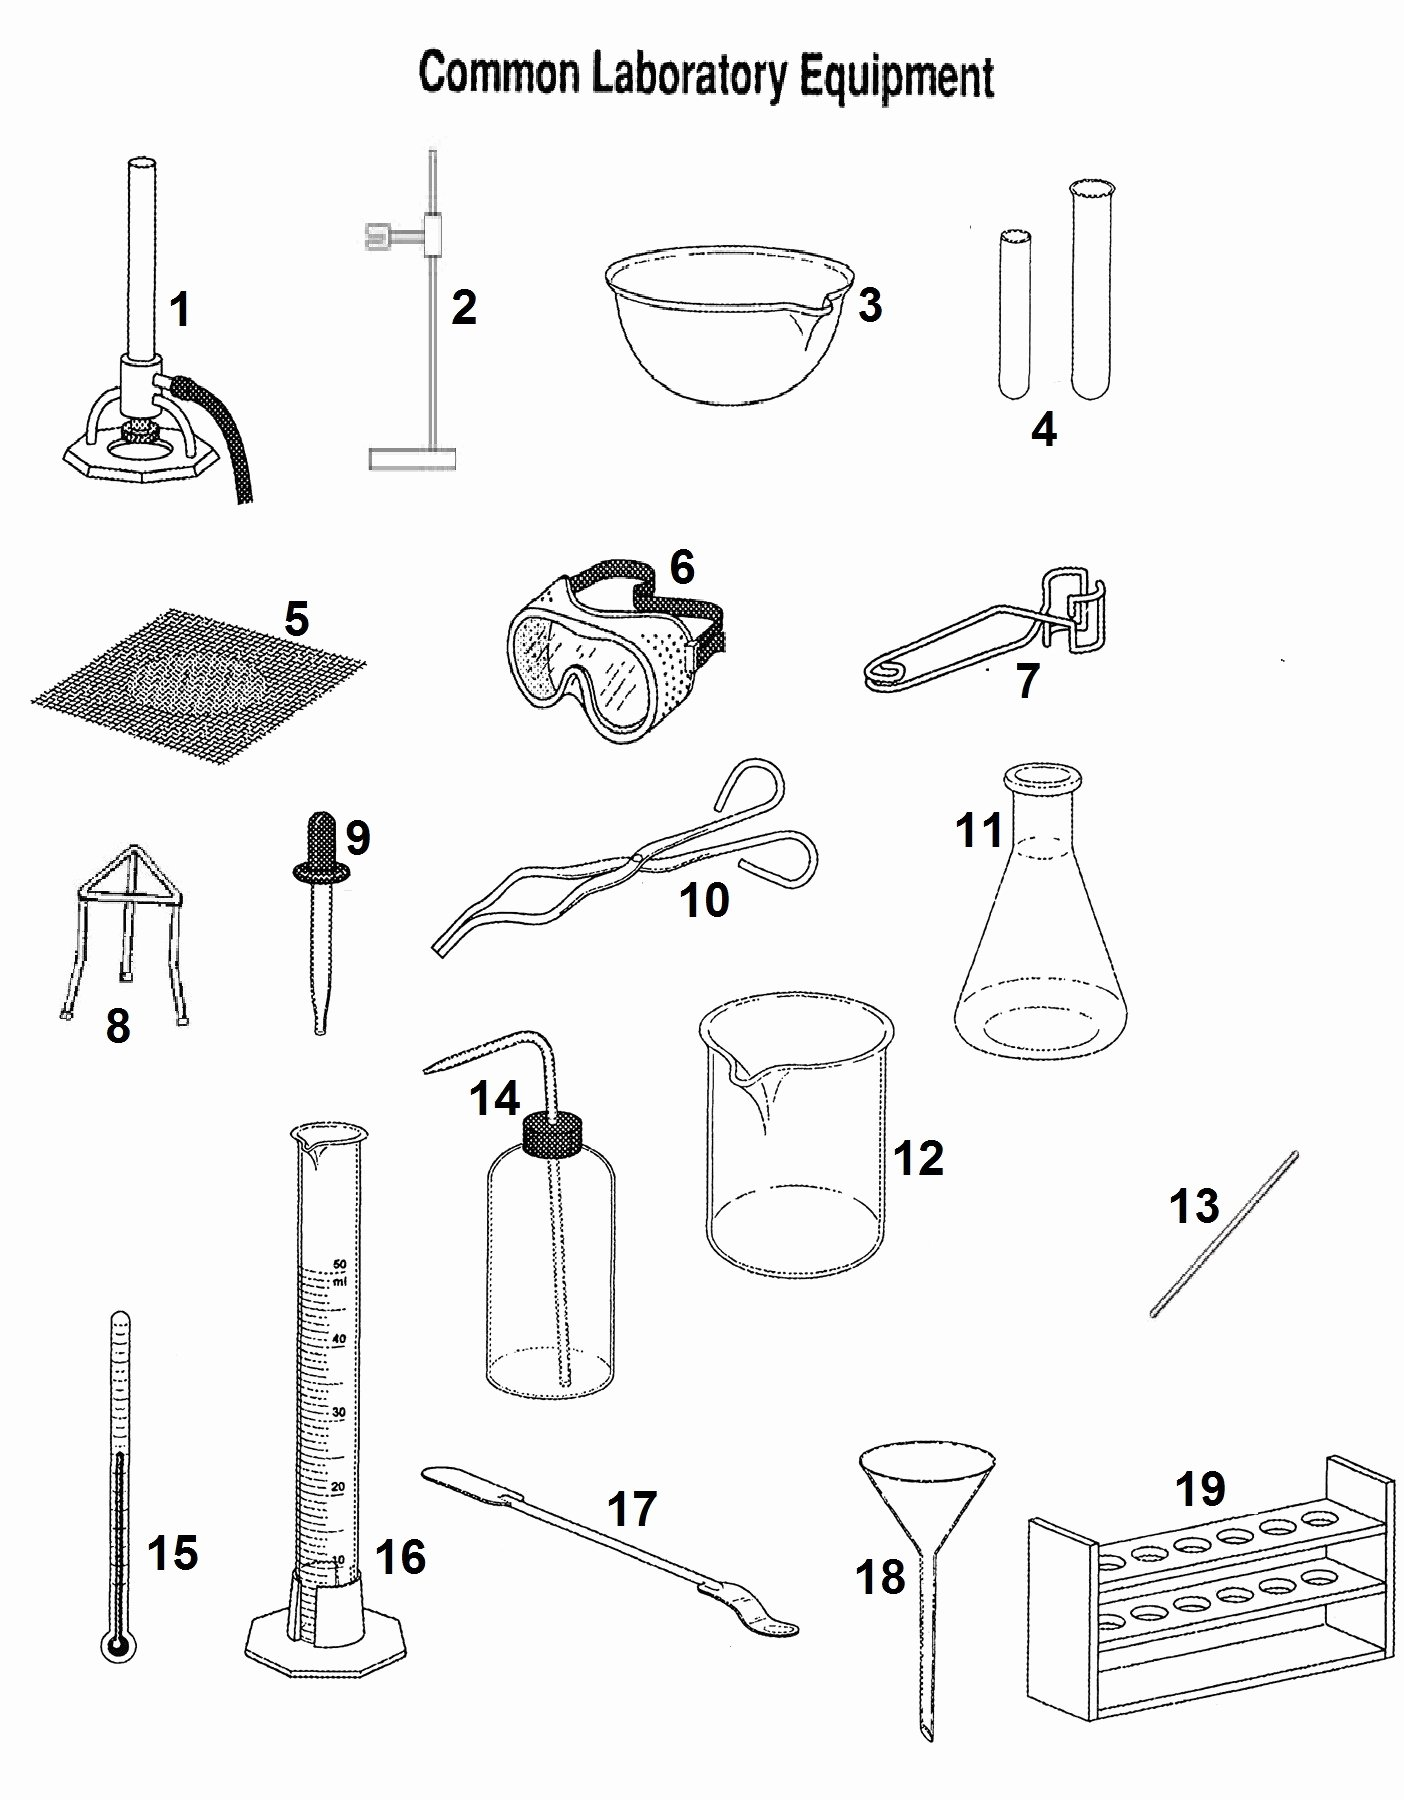 Lab Safety Symbols Worksheet New Lab Safety Symbols Worksheet Answers